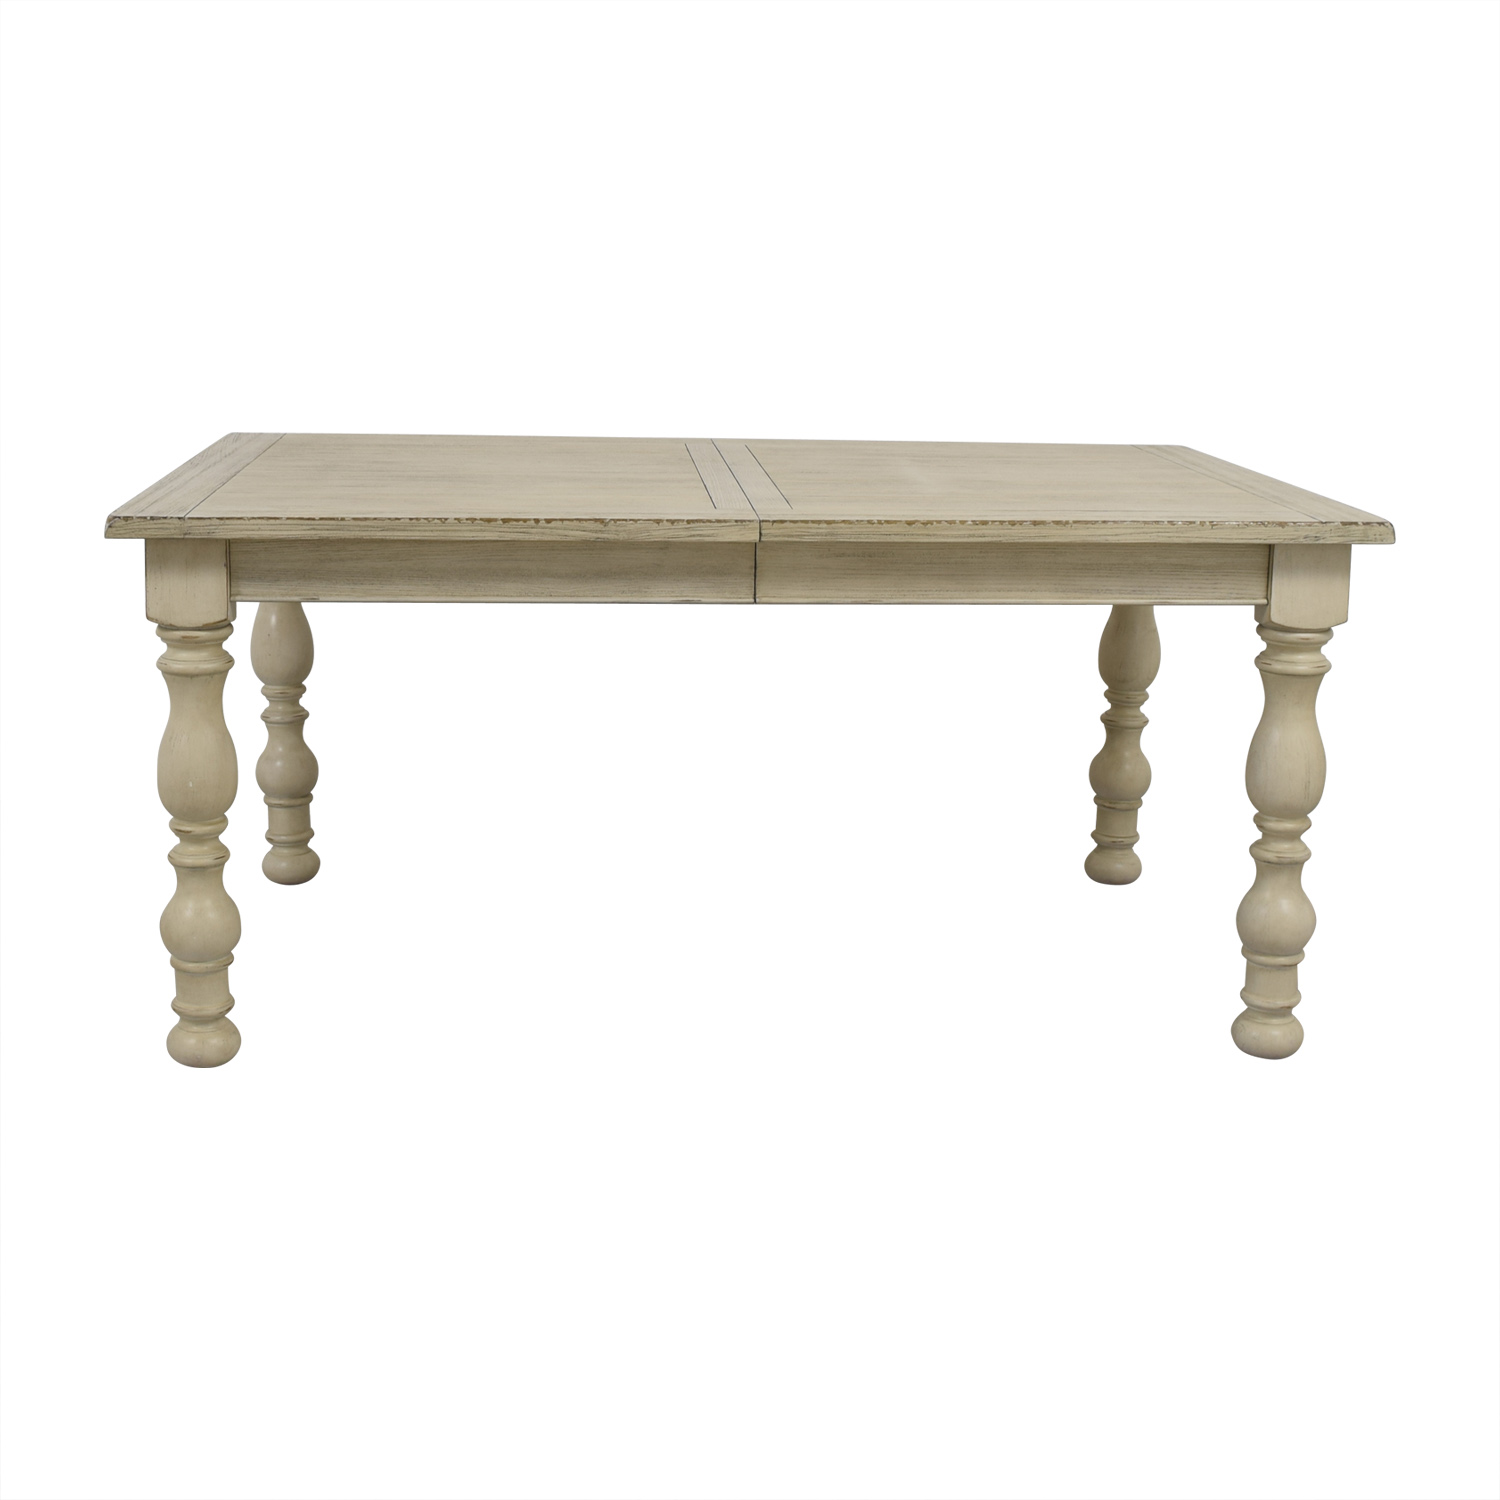 Raymour & Flanigan Dining Table with Extention Leaf / Sofas